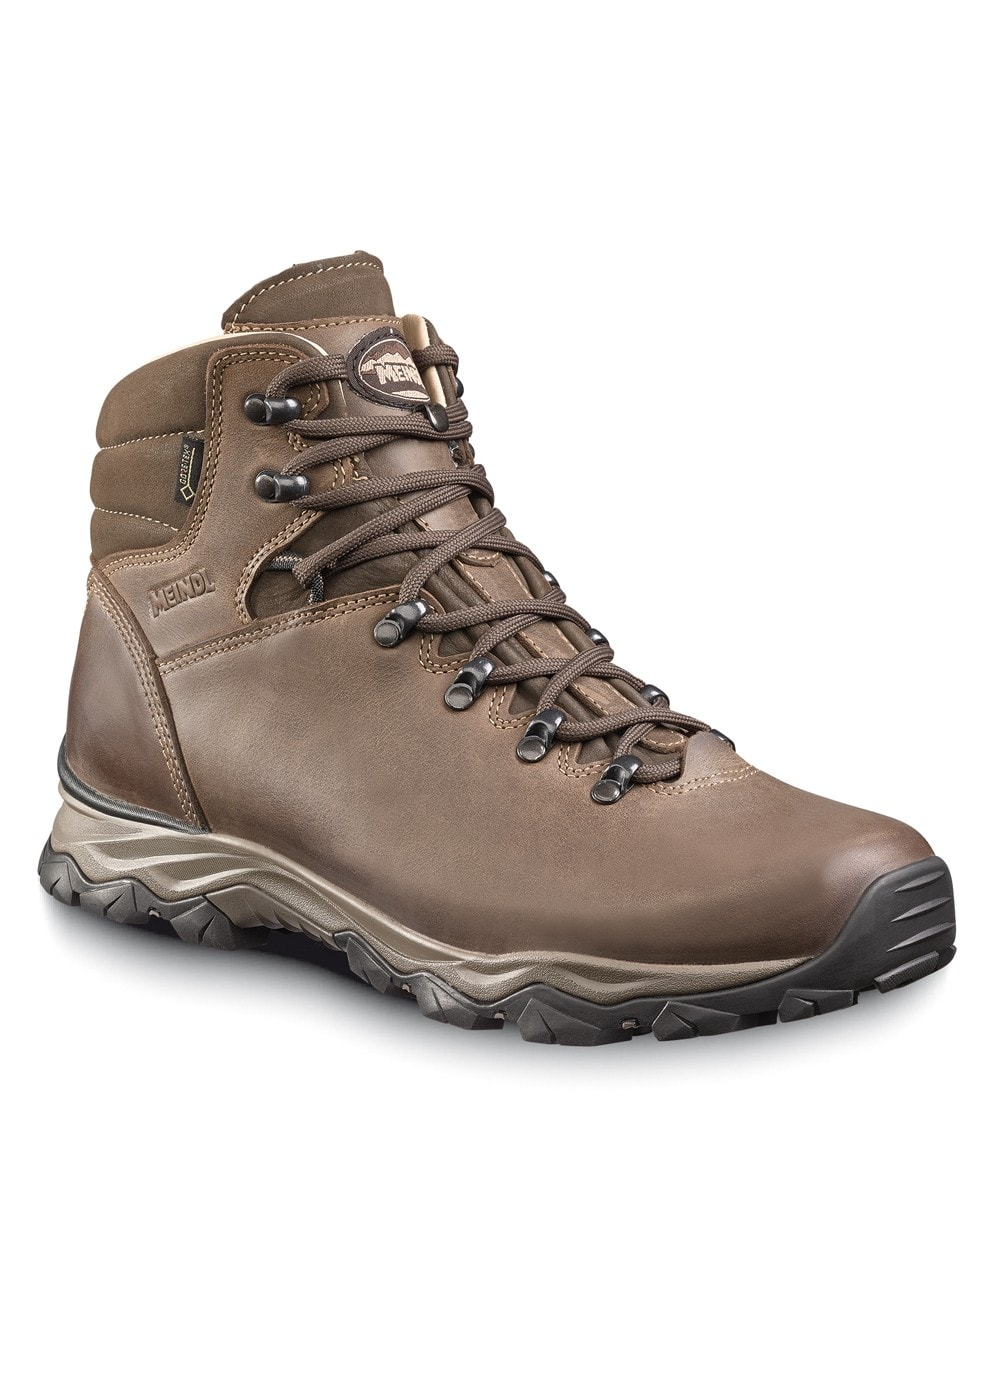 fe57351e05a Meindl Peru Lady GTX Boots - Ladies from A Hume UK